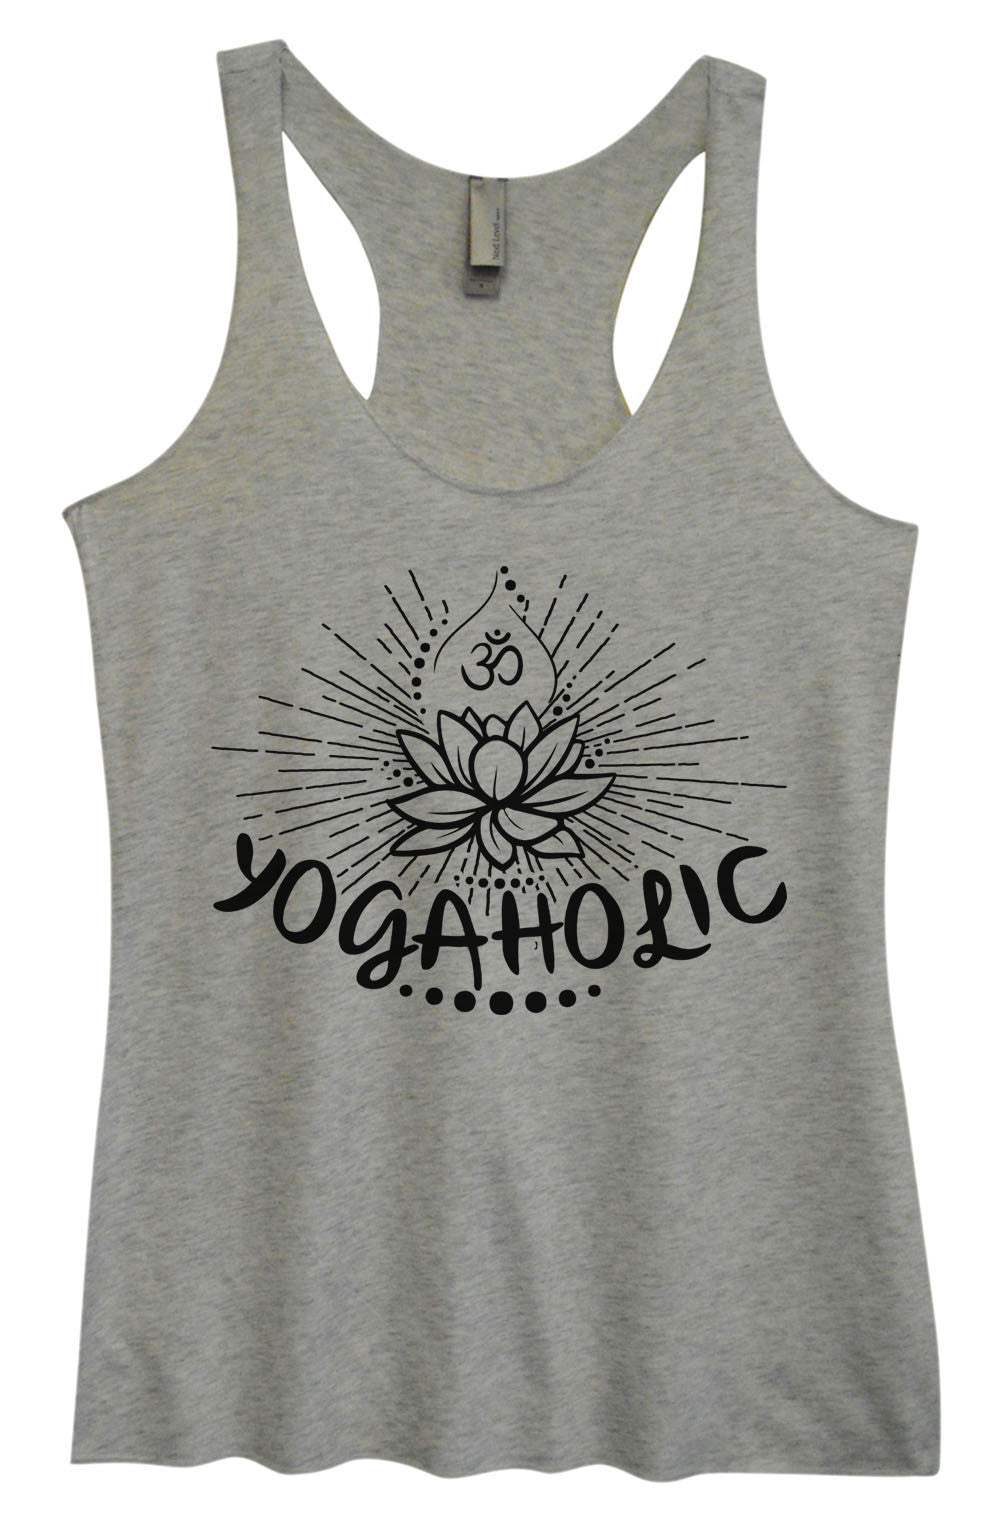 Womens Fashion Triblend Tank Top - Yogaholic - Tri-1017 - Funny Shirts Tank Tops Burnouts and Triblends  - 2